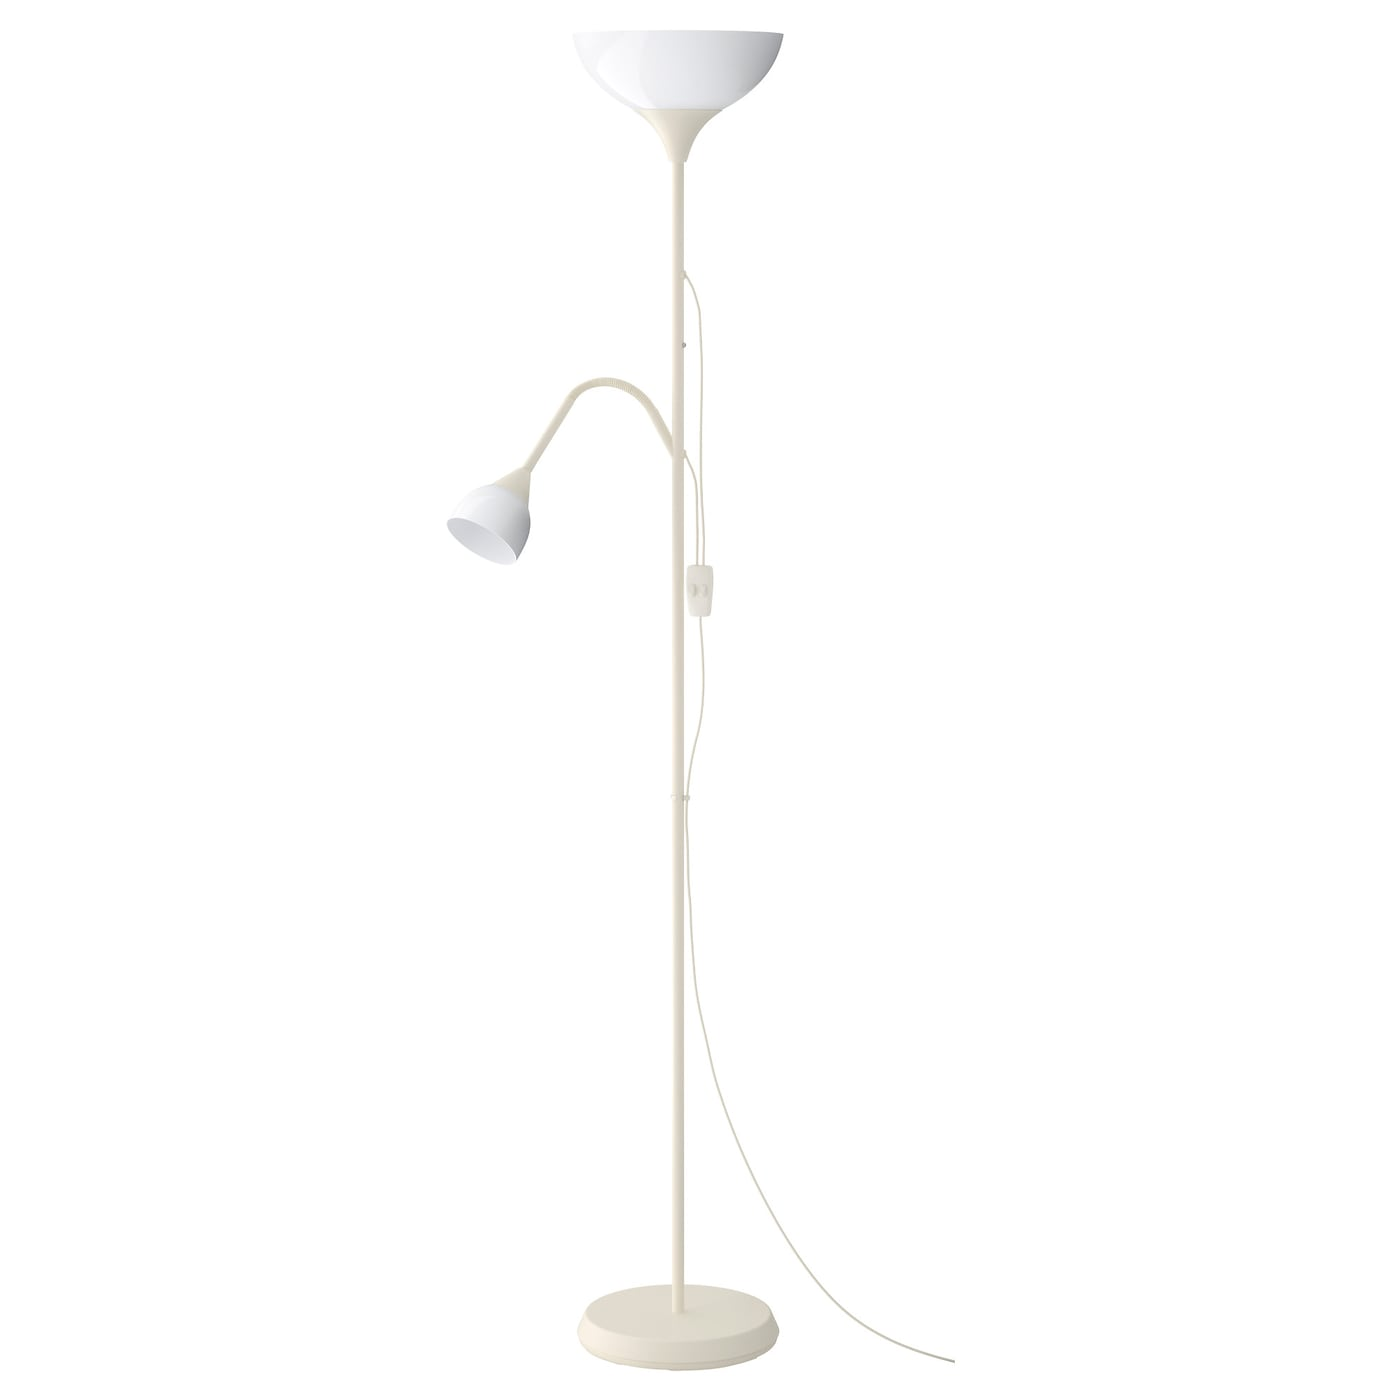 Floor lamps standard lamps ikea ikea not floor uplighterreading lamp aloadofball Image collections